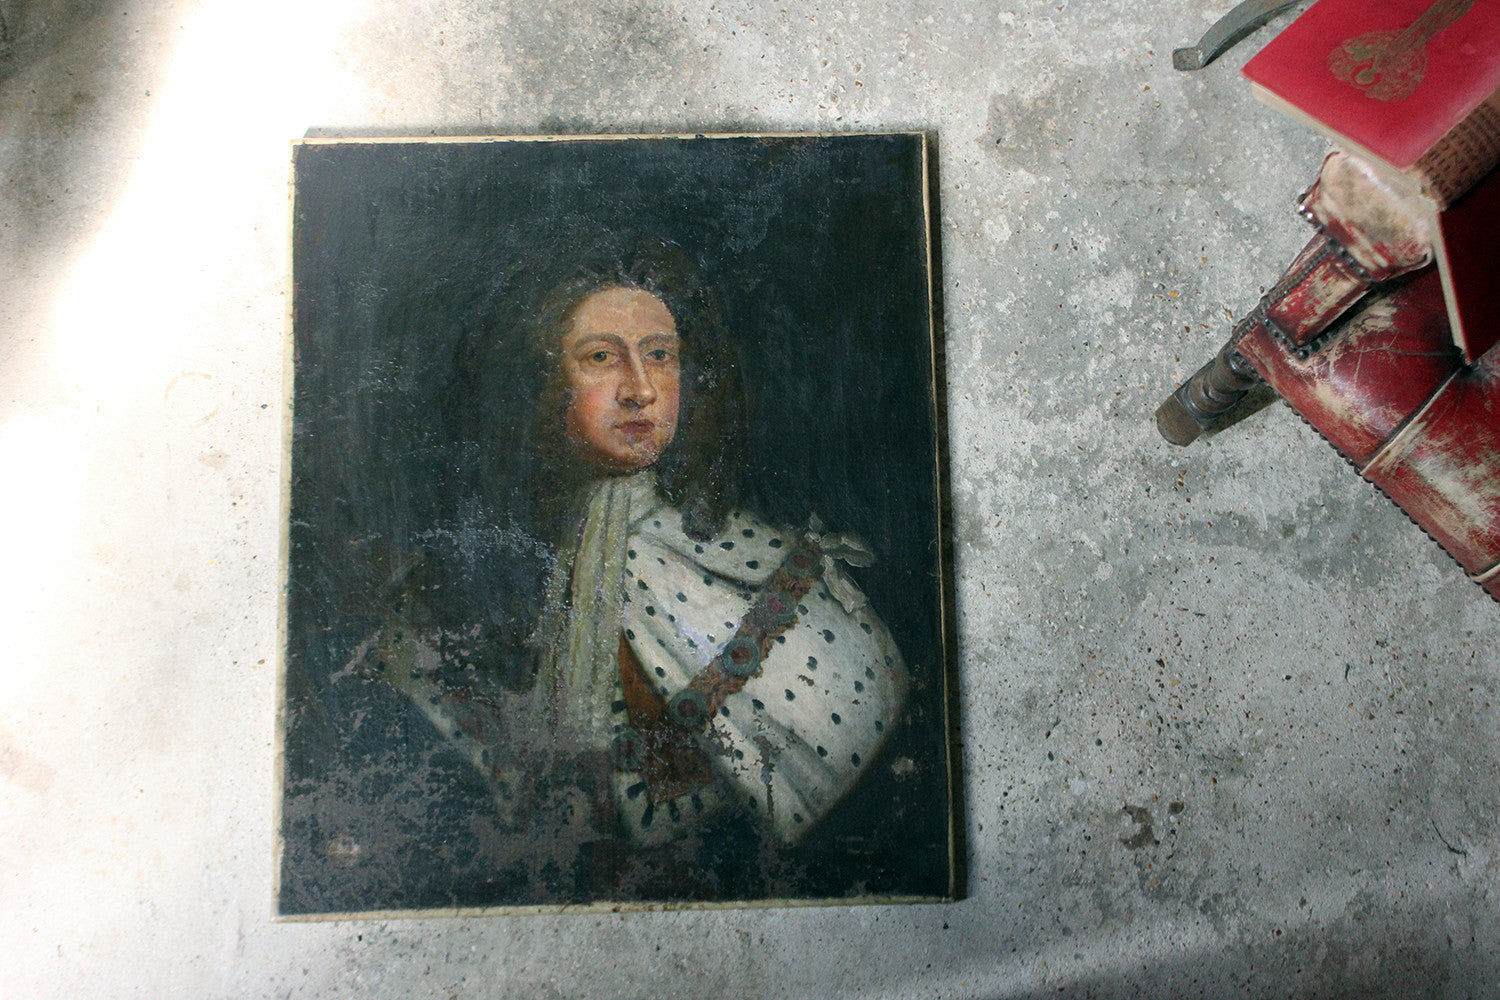 After Sir Godfrey Kneller; An Early 18thC Oil on Canvas Portrait of King George I c.1714